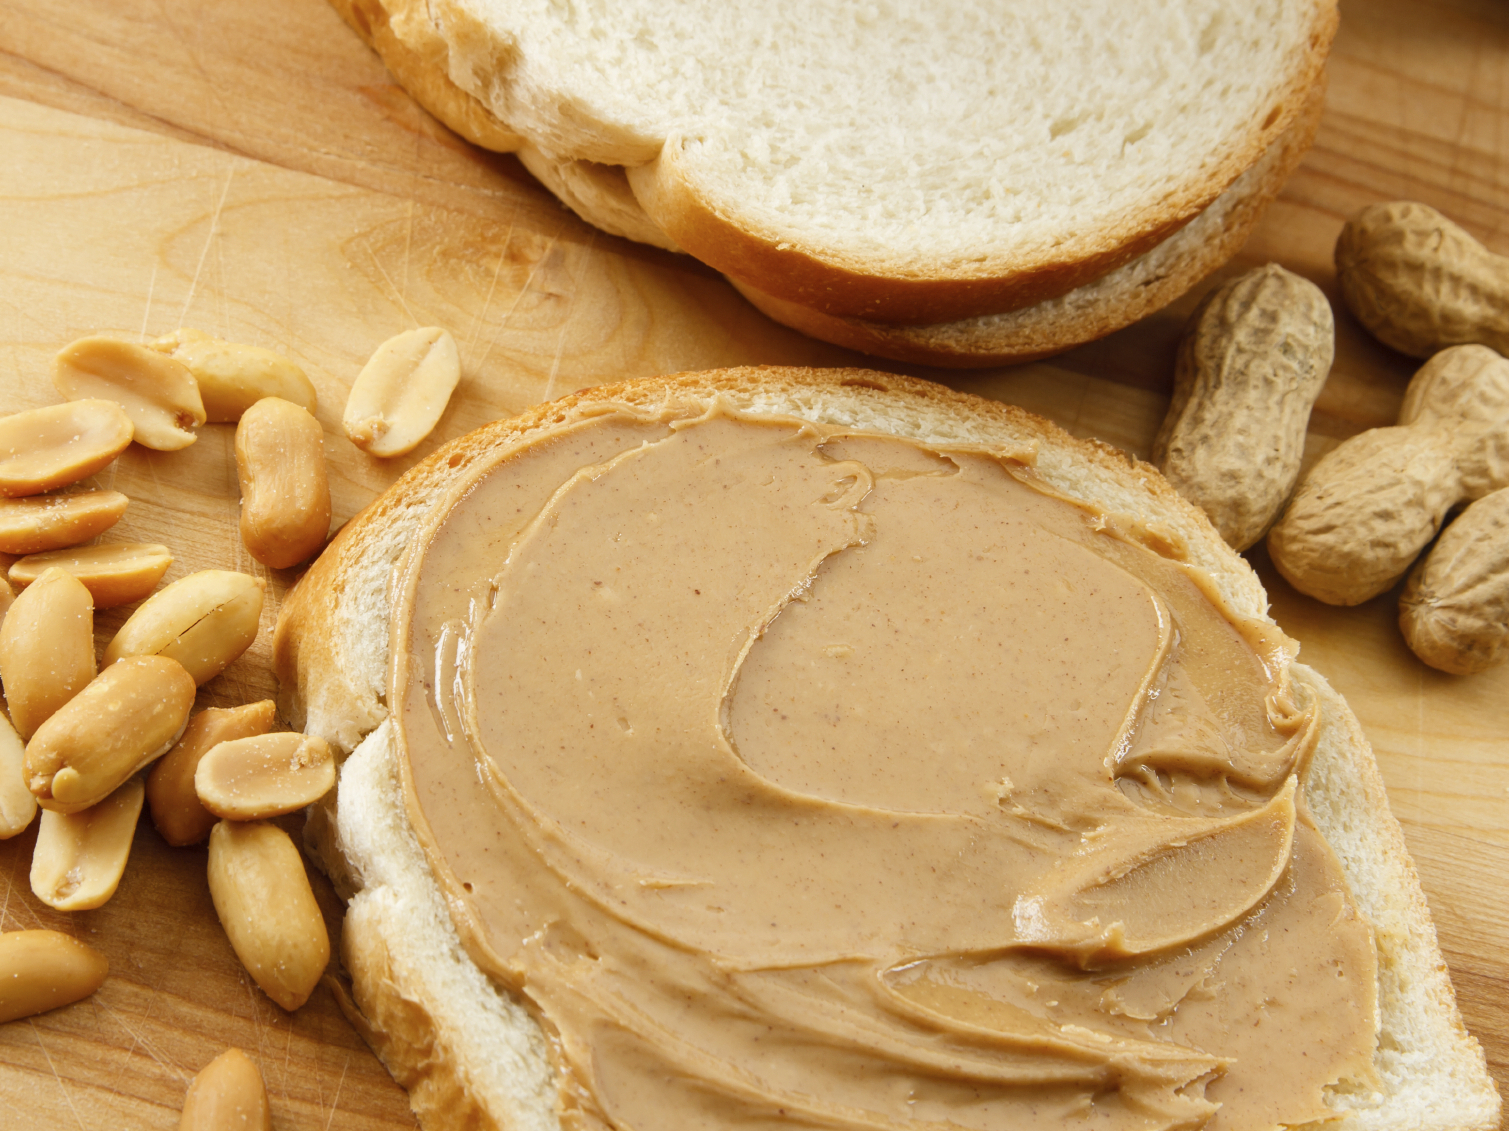 Peanut Butter Recall Widens To Other Nut Butters After Salmonella ...